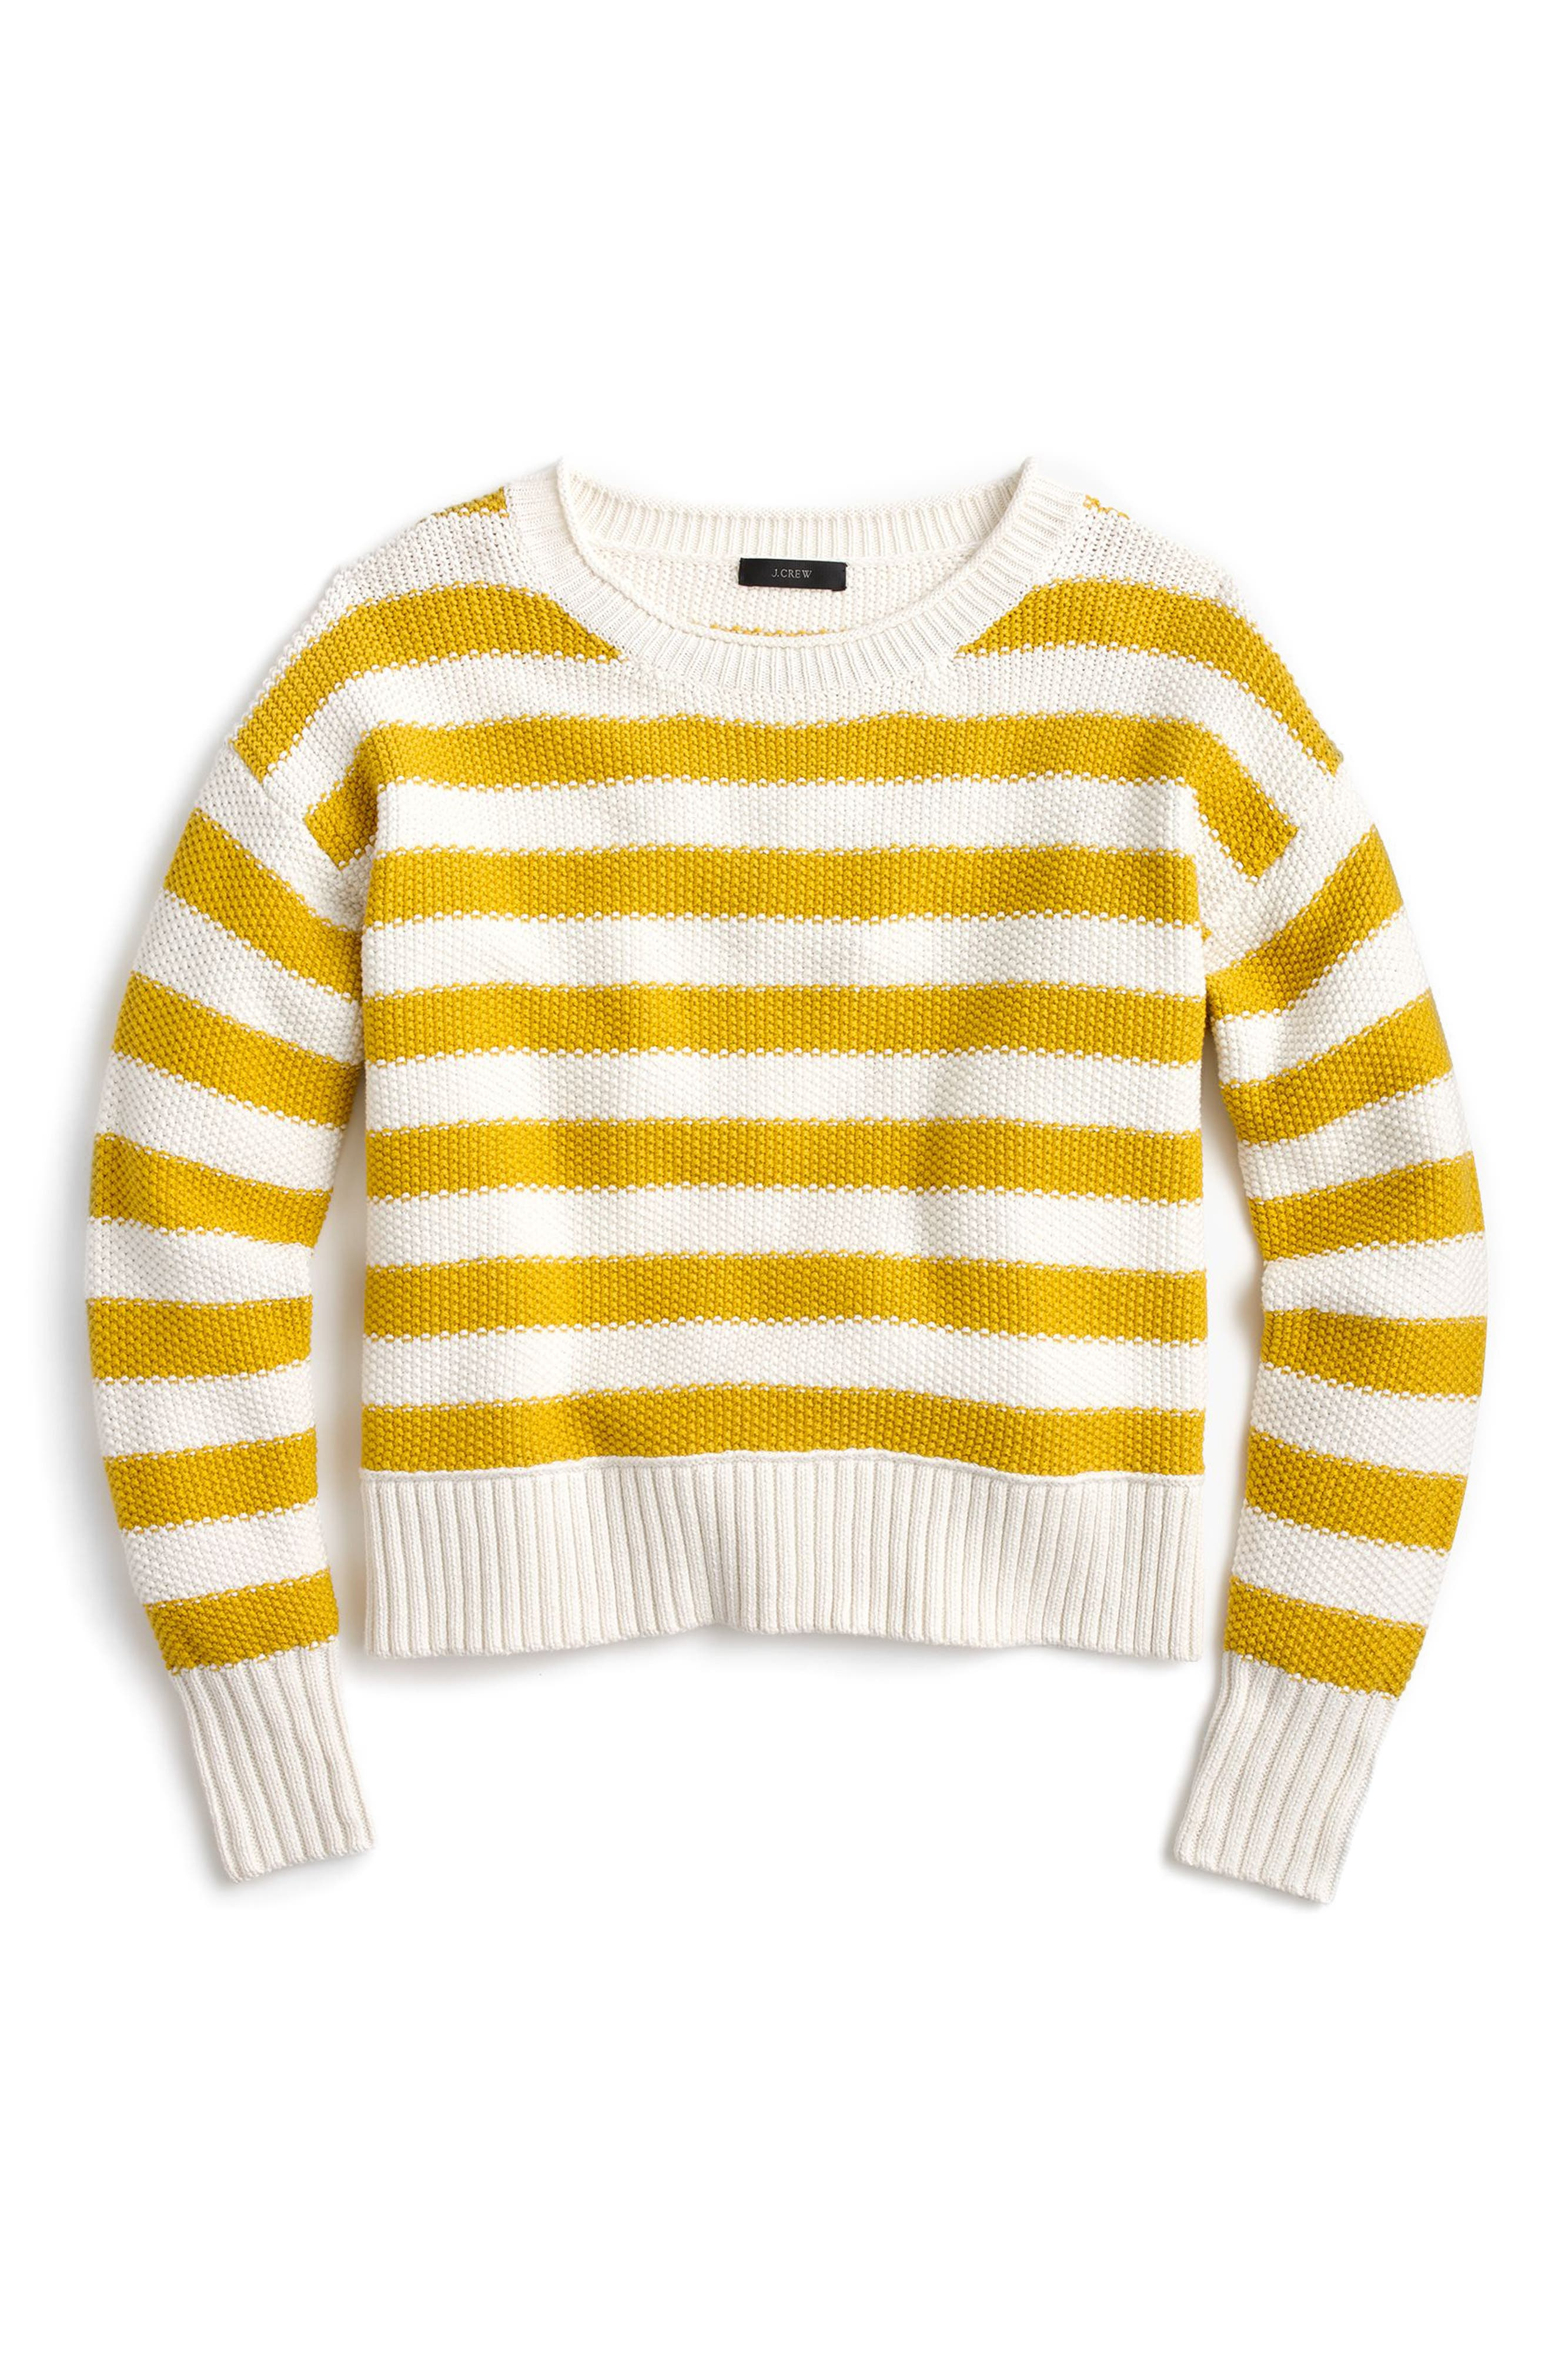 Alternate Image 1 Selected - J.Crew Textured Stripe Sweater